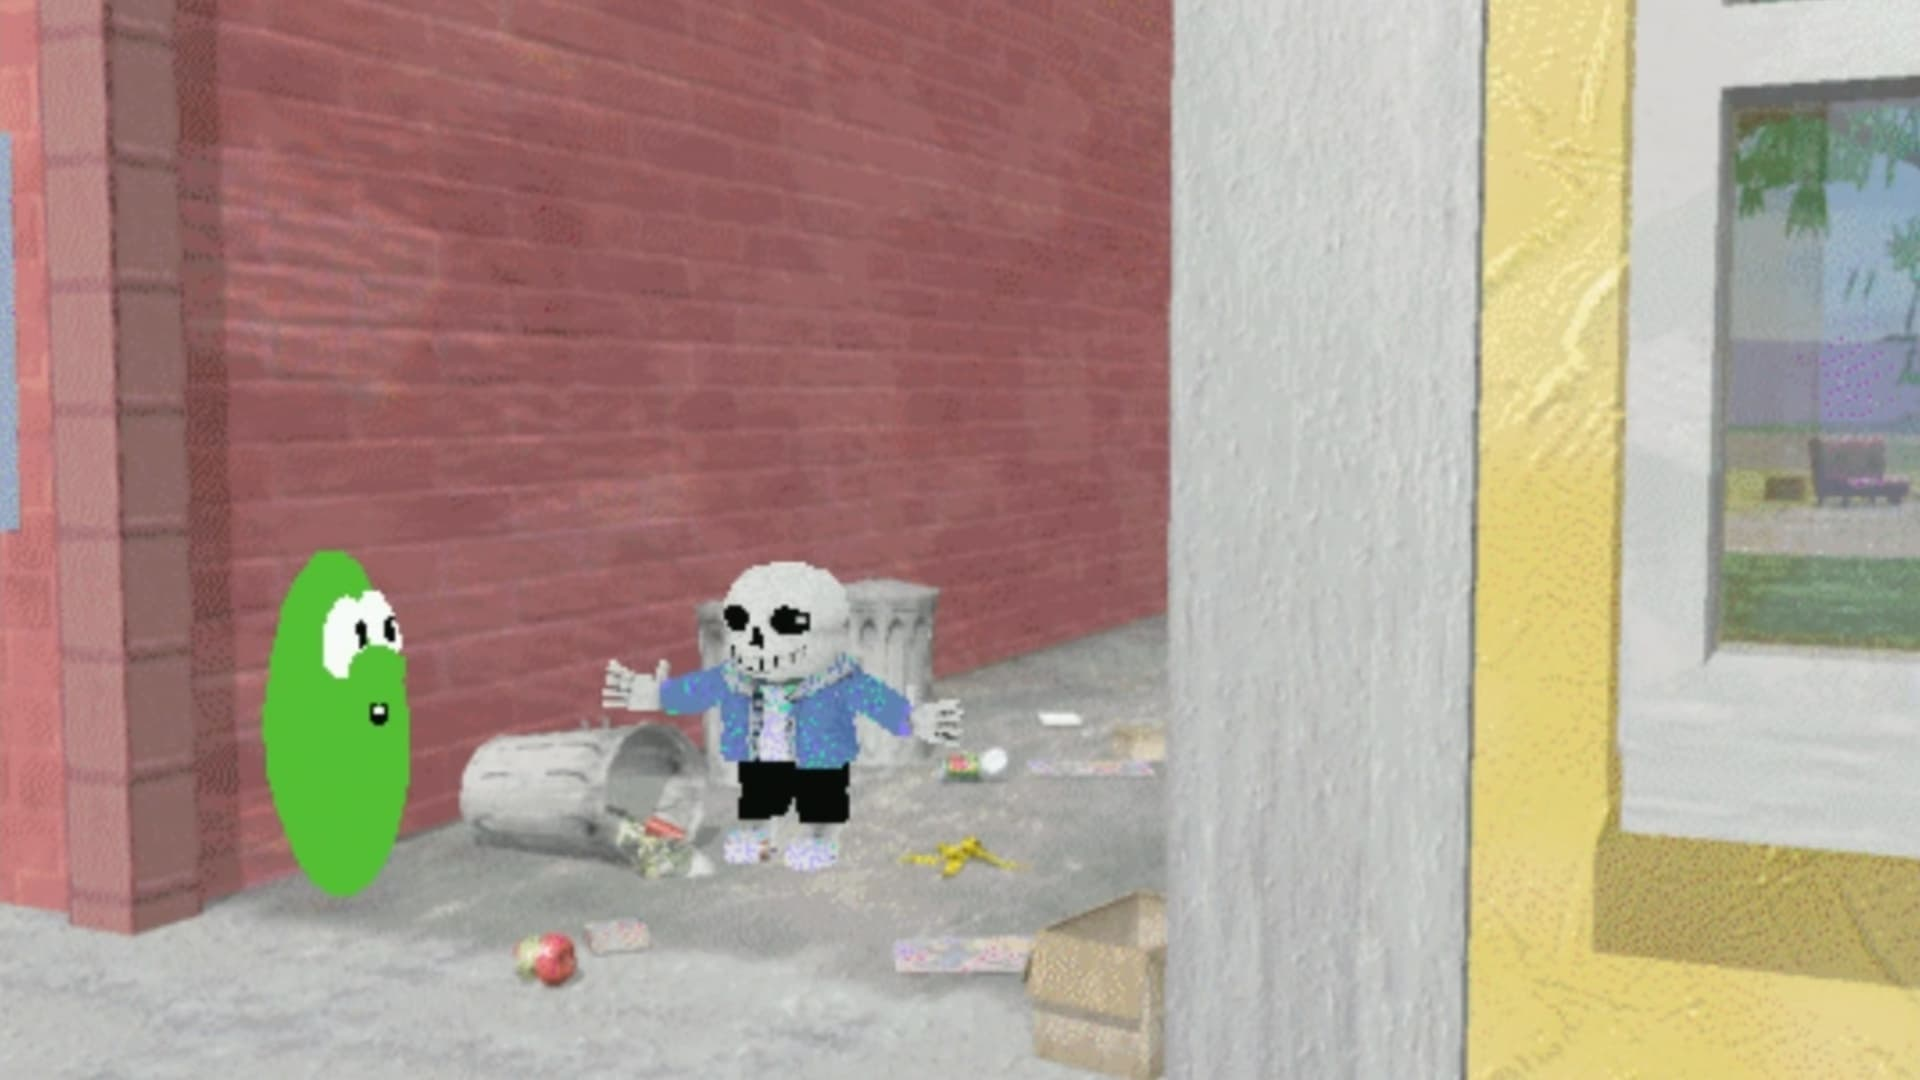 The Blue Shell Incident (2019)